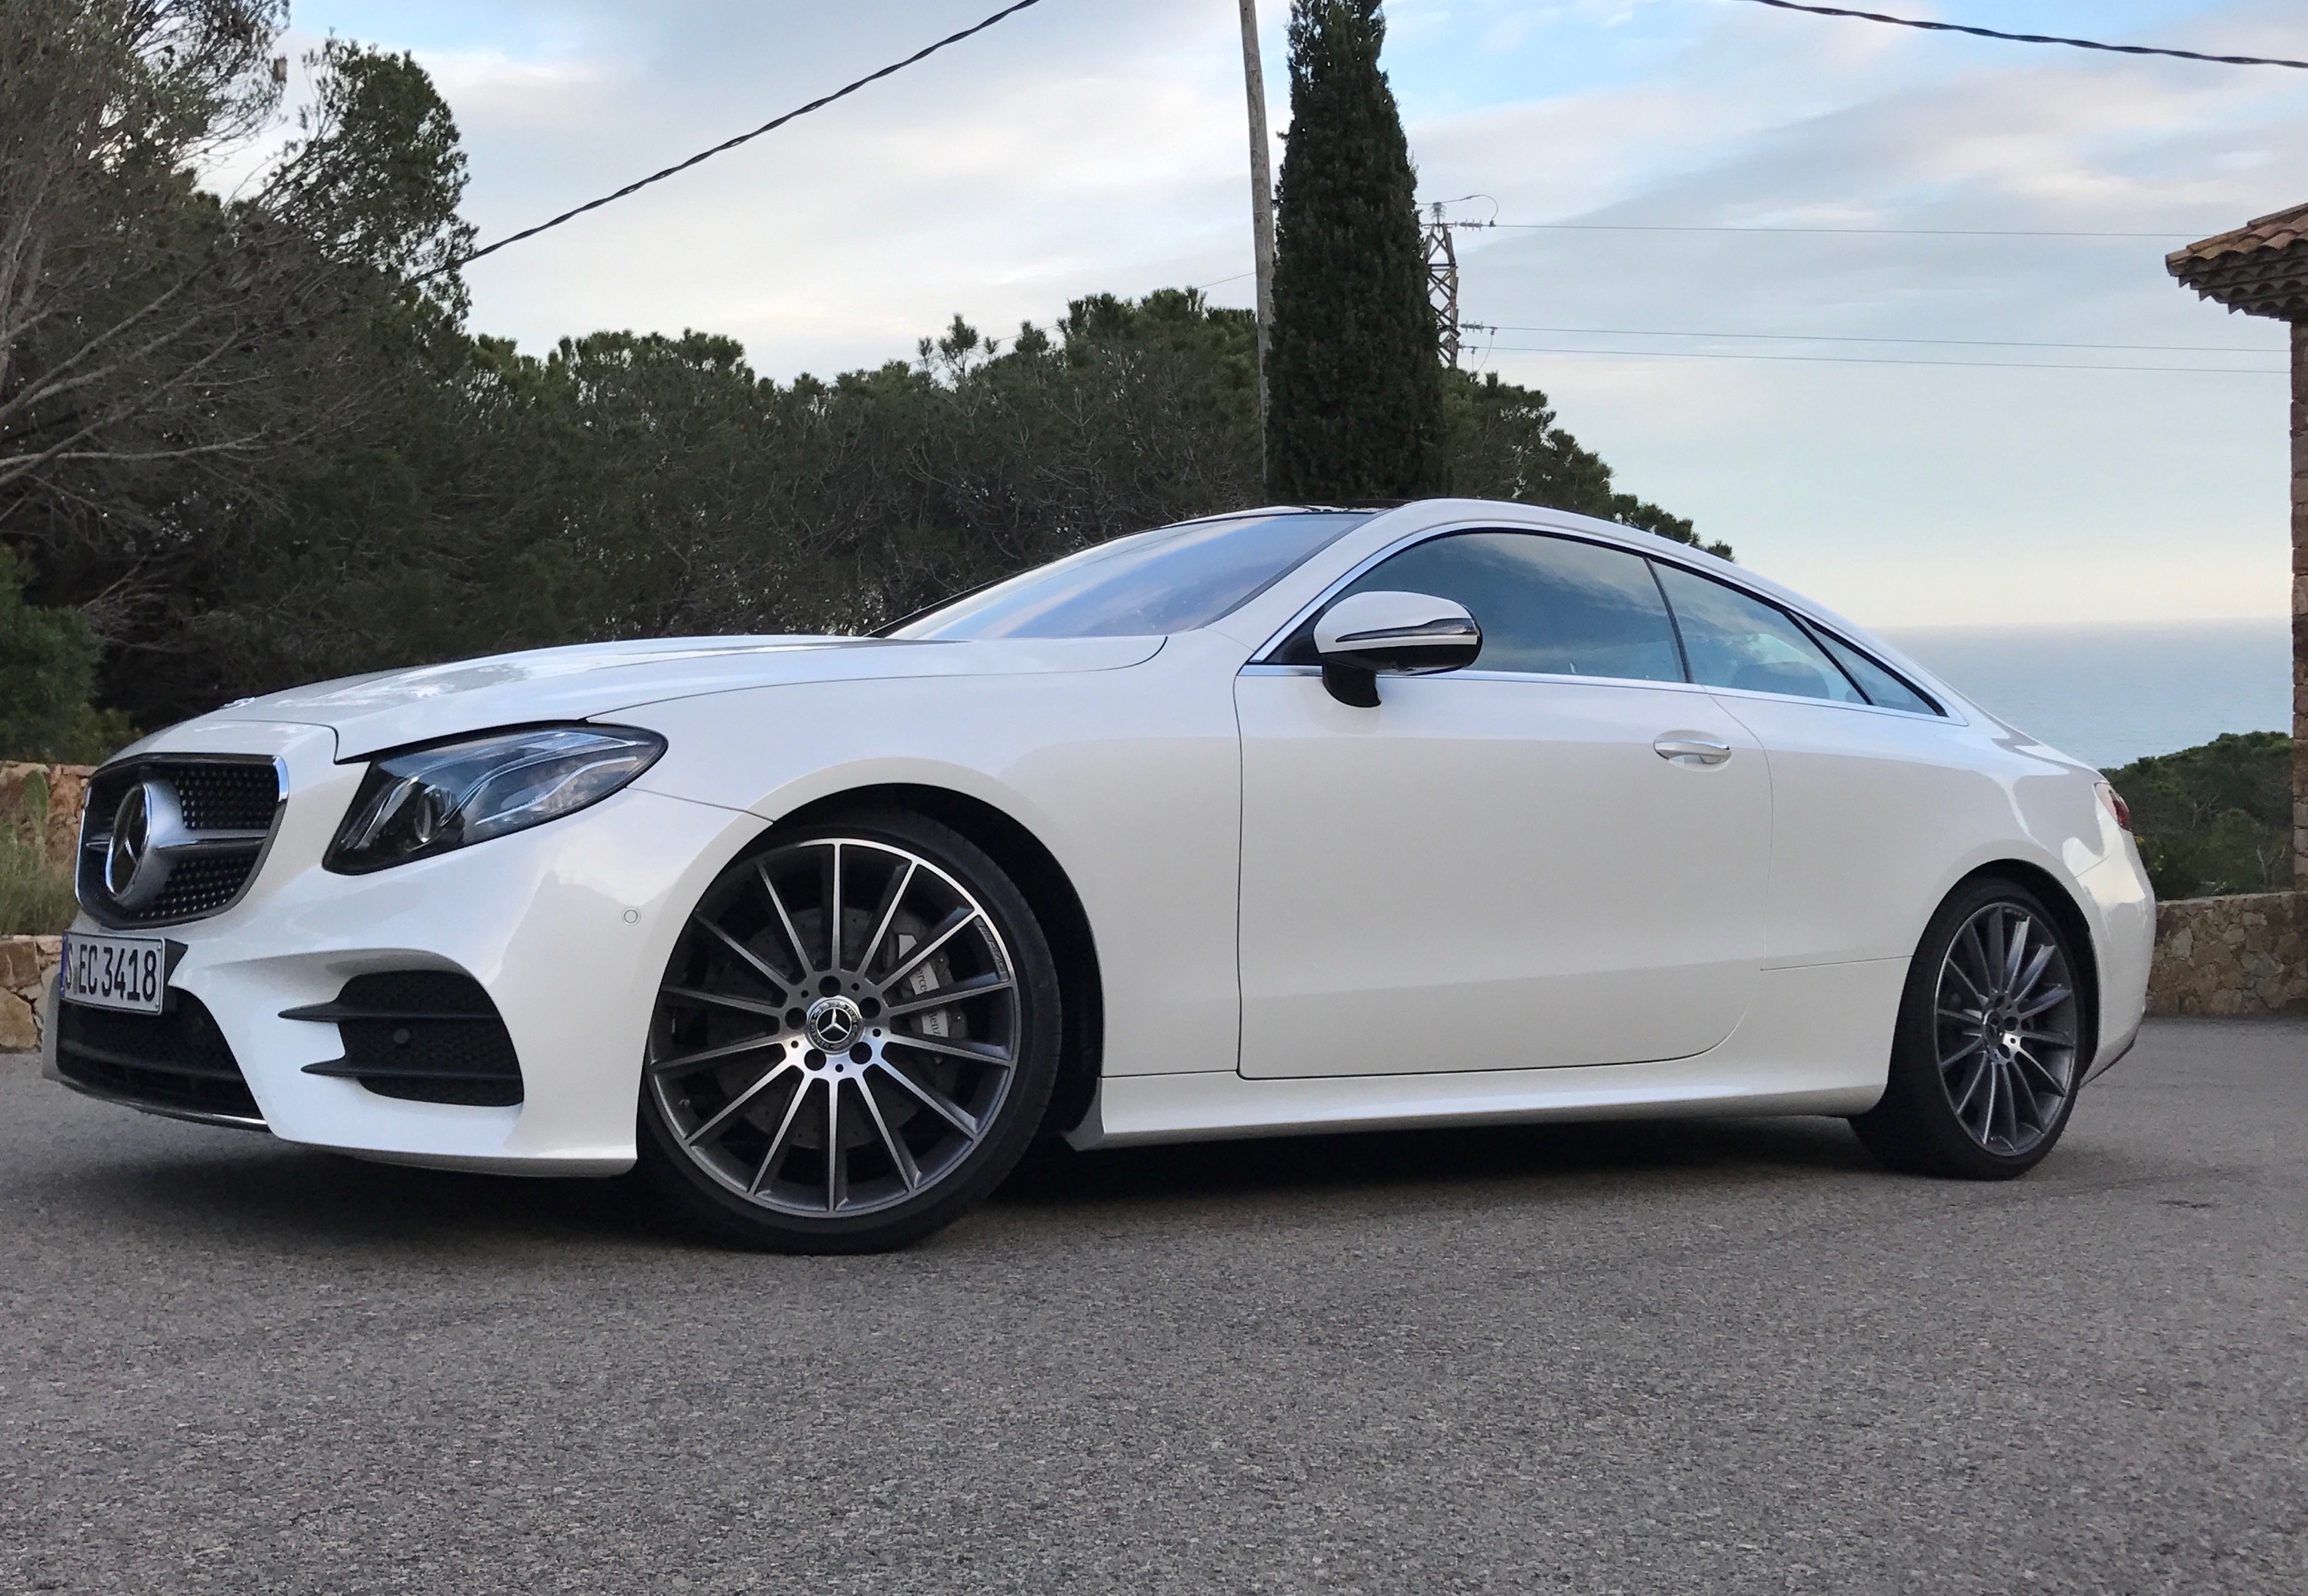 Mercedes Benz E 2017 Price >> 2017 Mercedes-Benz E-Class Coupe review | CarAdvice